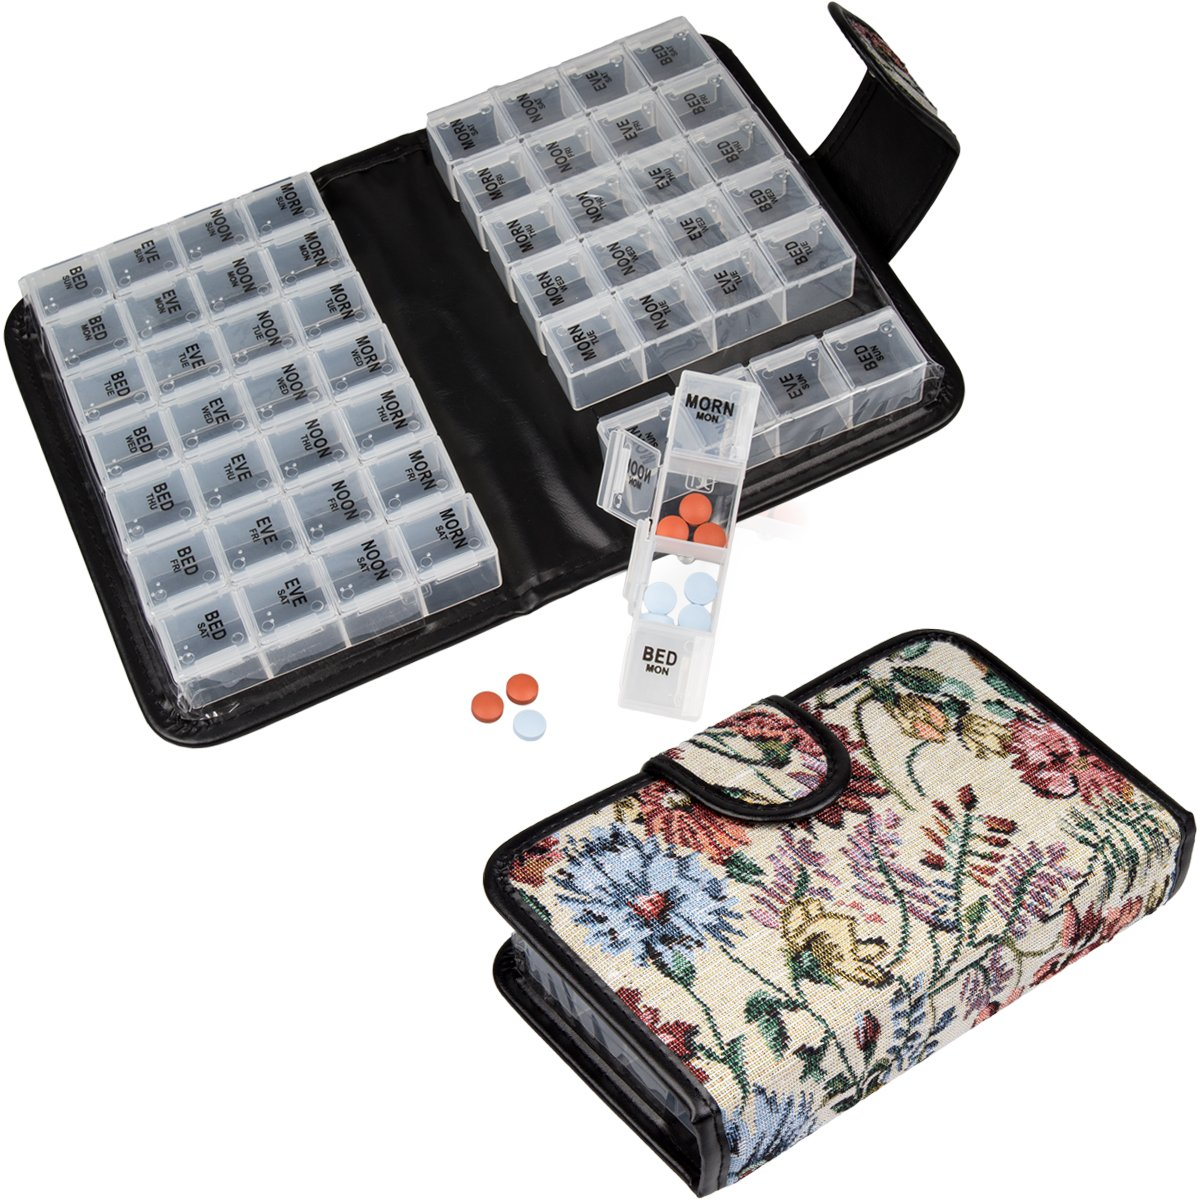 14-Day Pill & Vitamin Organizer Booklet 2 Weeks AM/PM 4 Doses A Day Travel Case by DG Home Goods   B01EIGWXJW